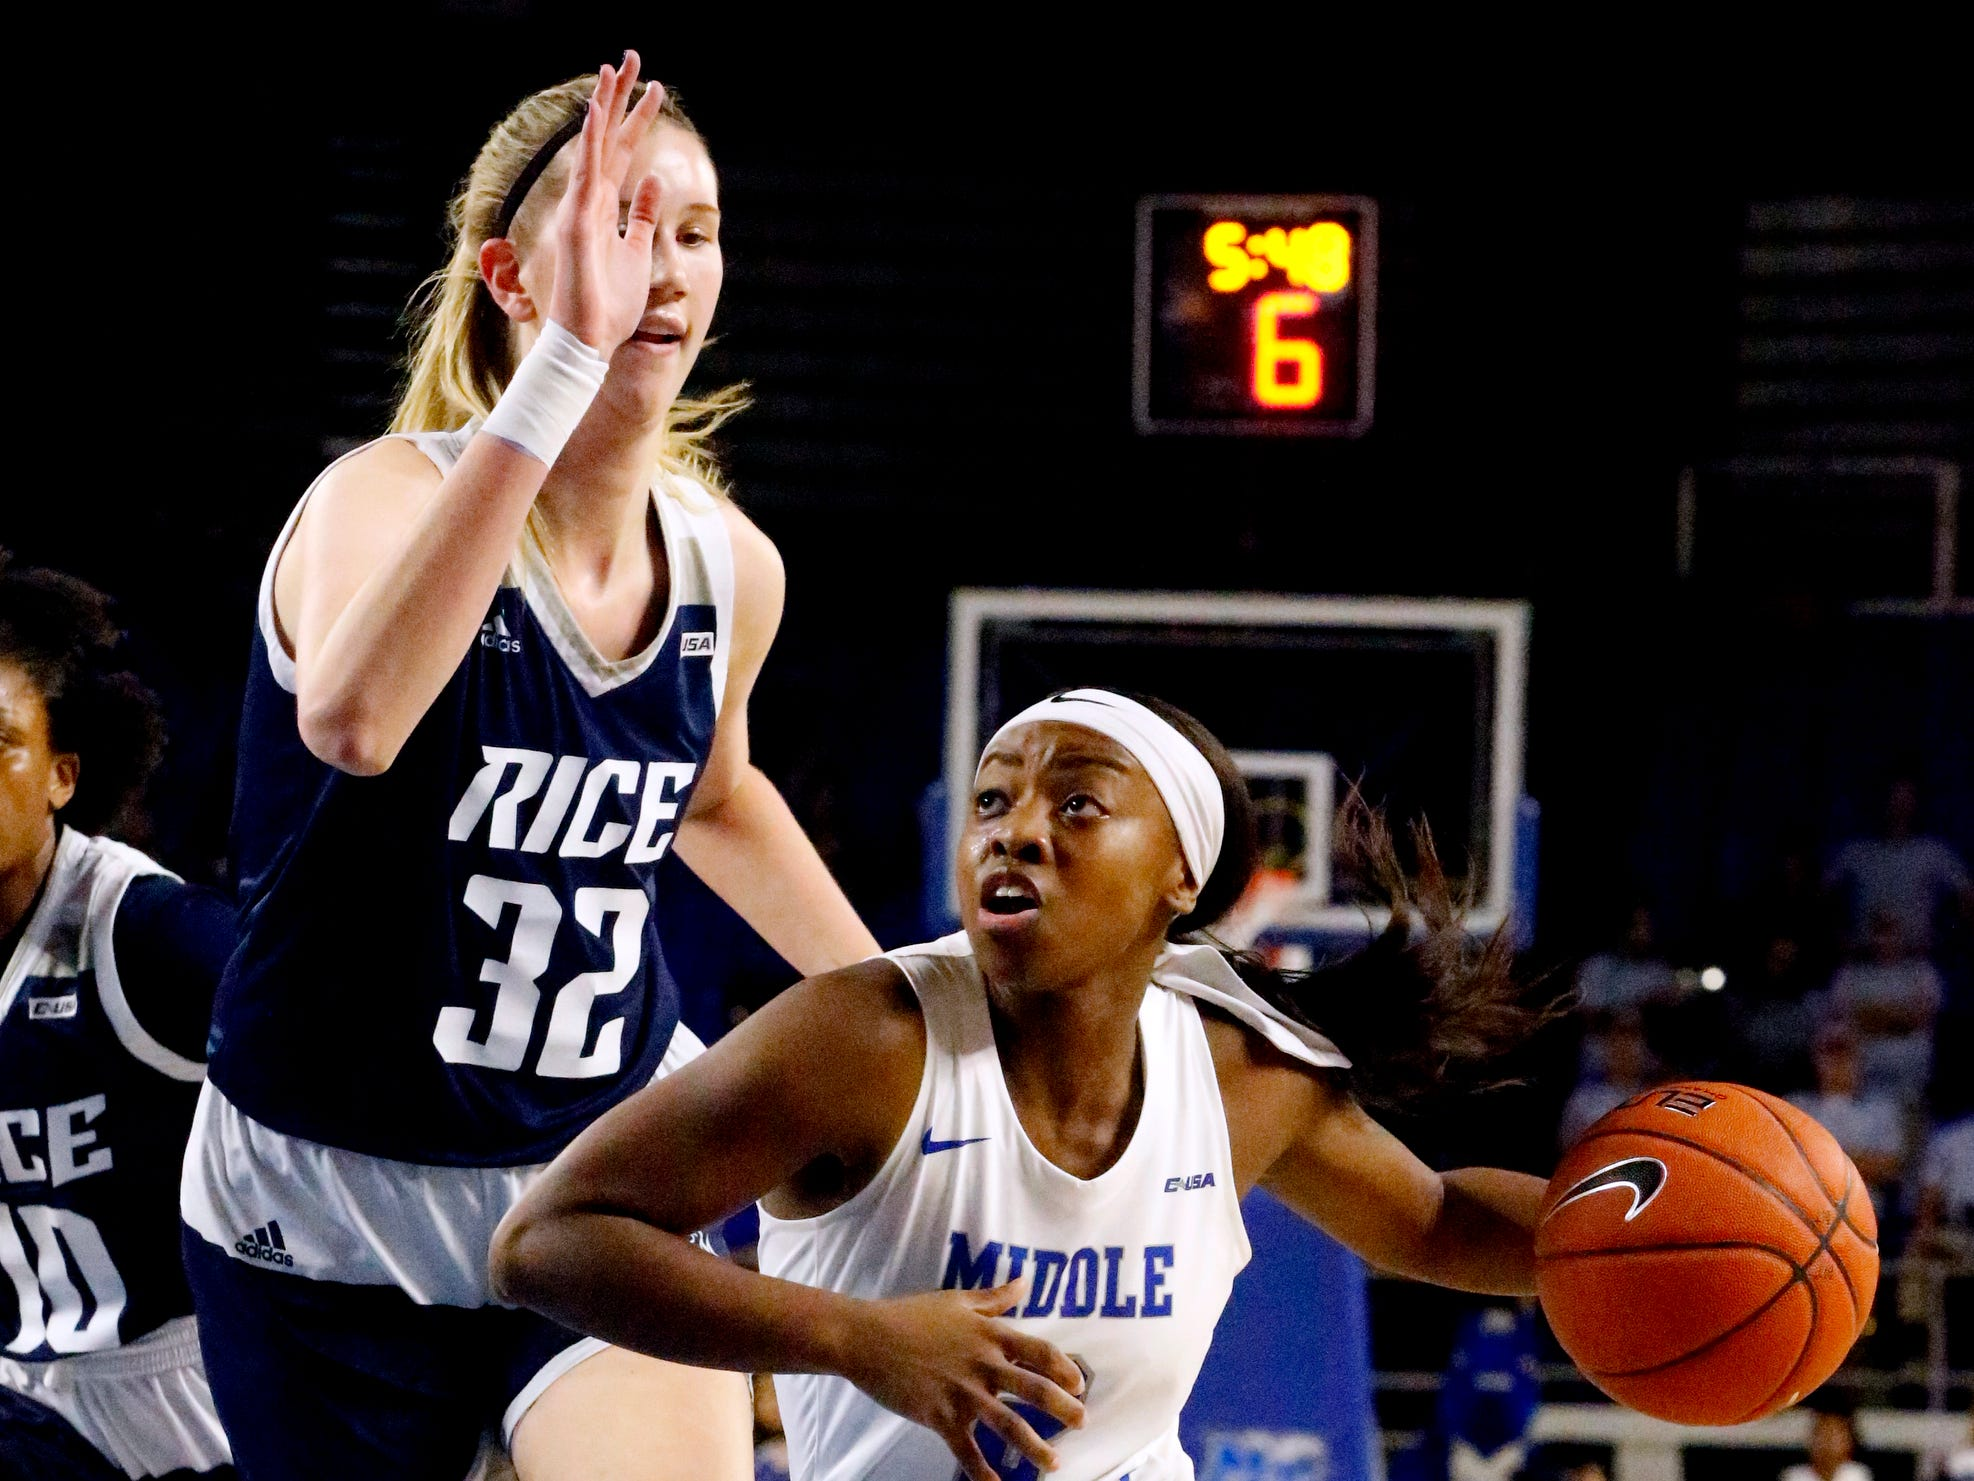 MTSU's guard Taylor Sutton (2) drives to the basket as Rice's center Nancy Mulkey (32) guards her on Thursday Jan. 24, 2019.